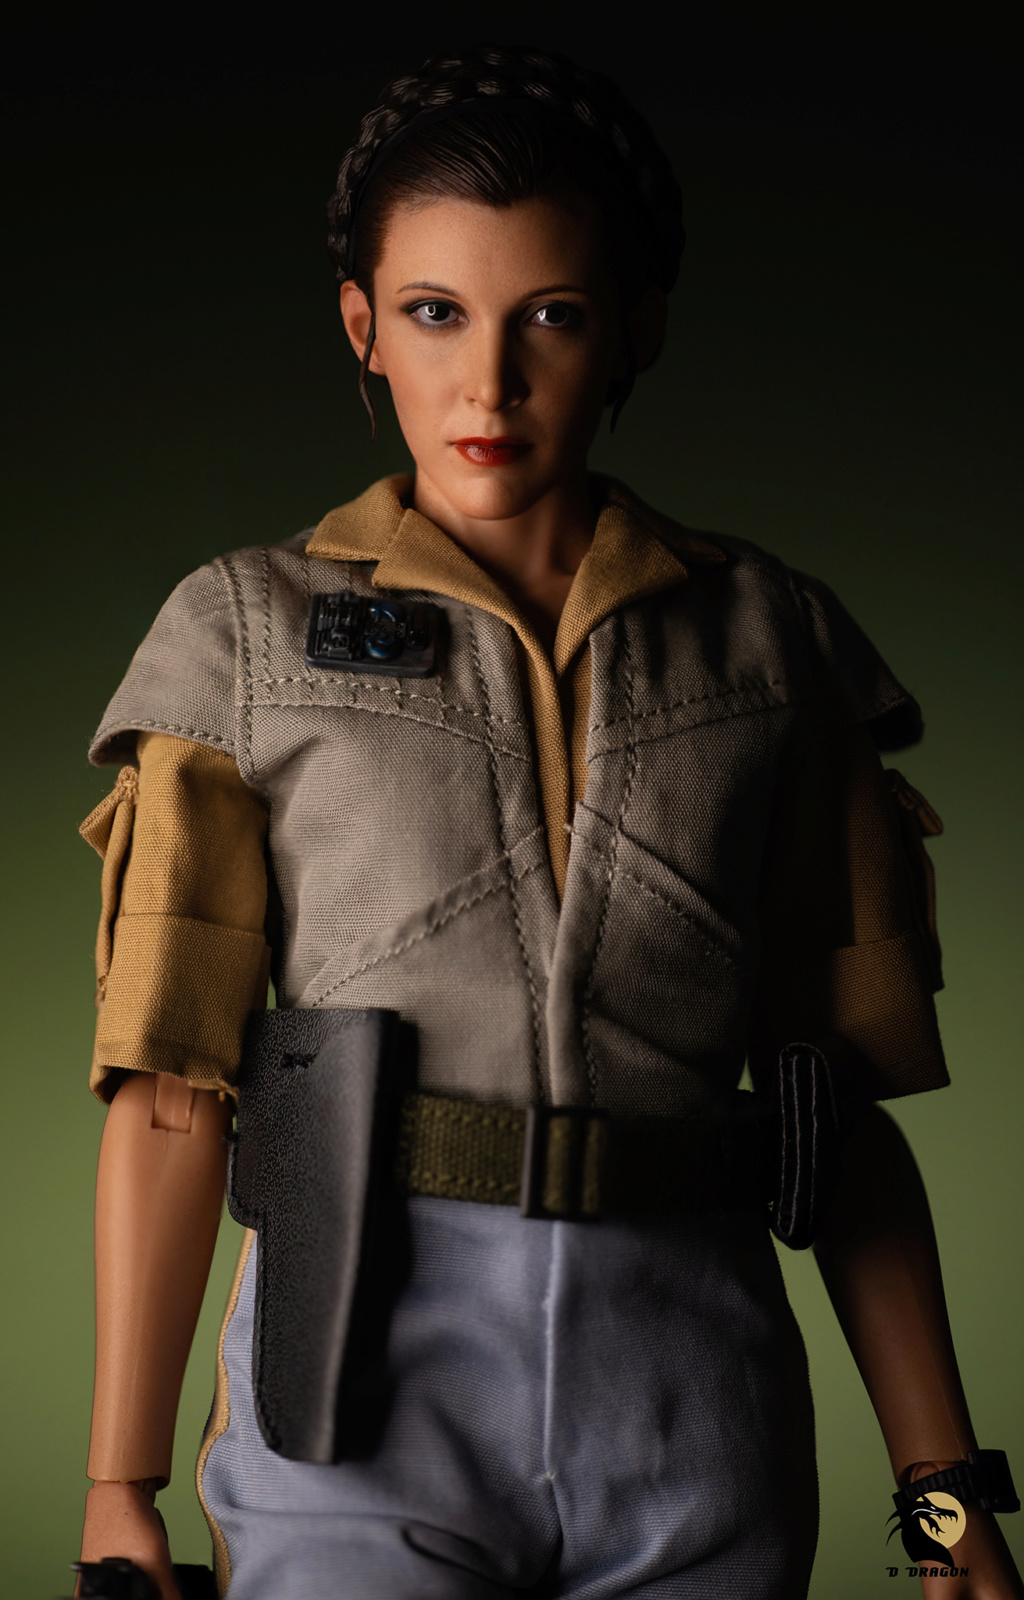 Endor Leia - NEW PRODUCT: HOT TOYS: STAR WARS: RETURN OF THE JEDI PRINCESS LEIA AND WICKET 1/6TH SCALE COLLECTIBLE FIGURES SET Endor_15